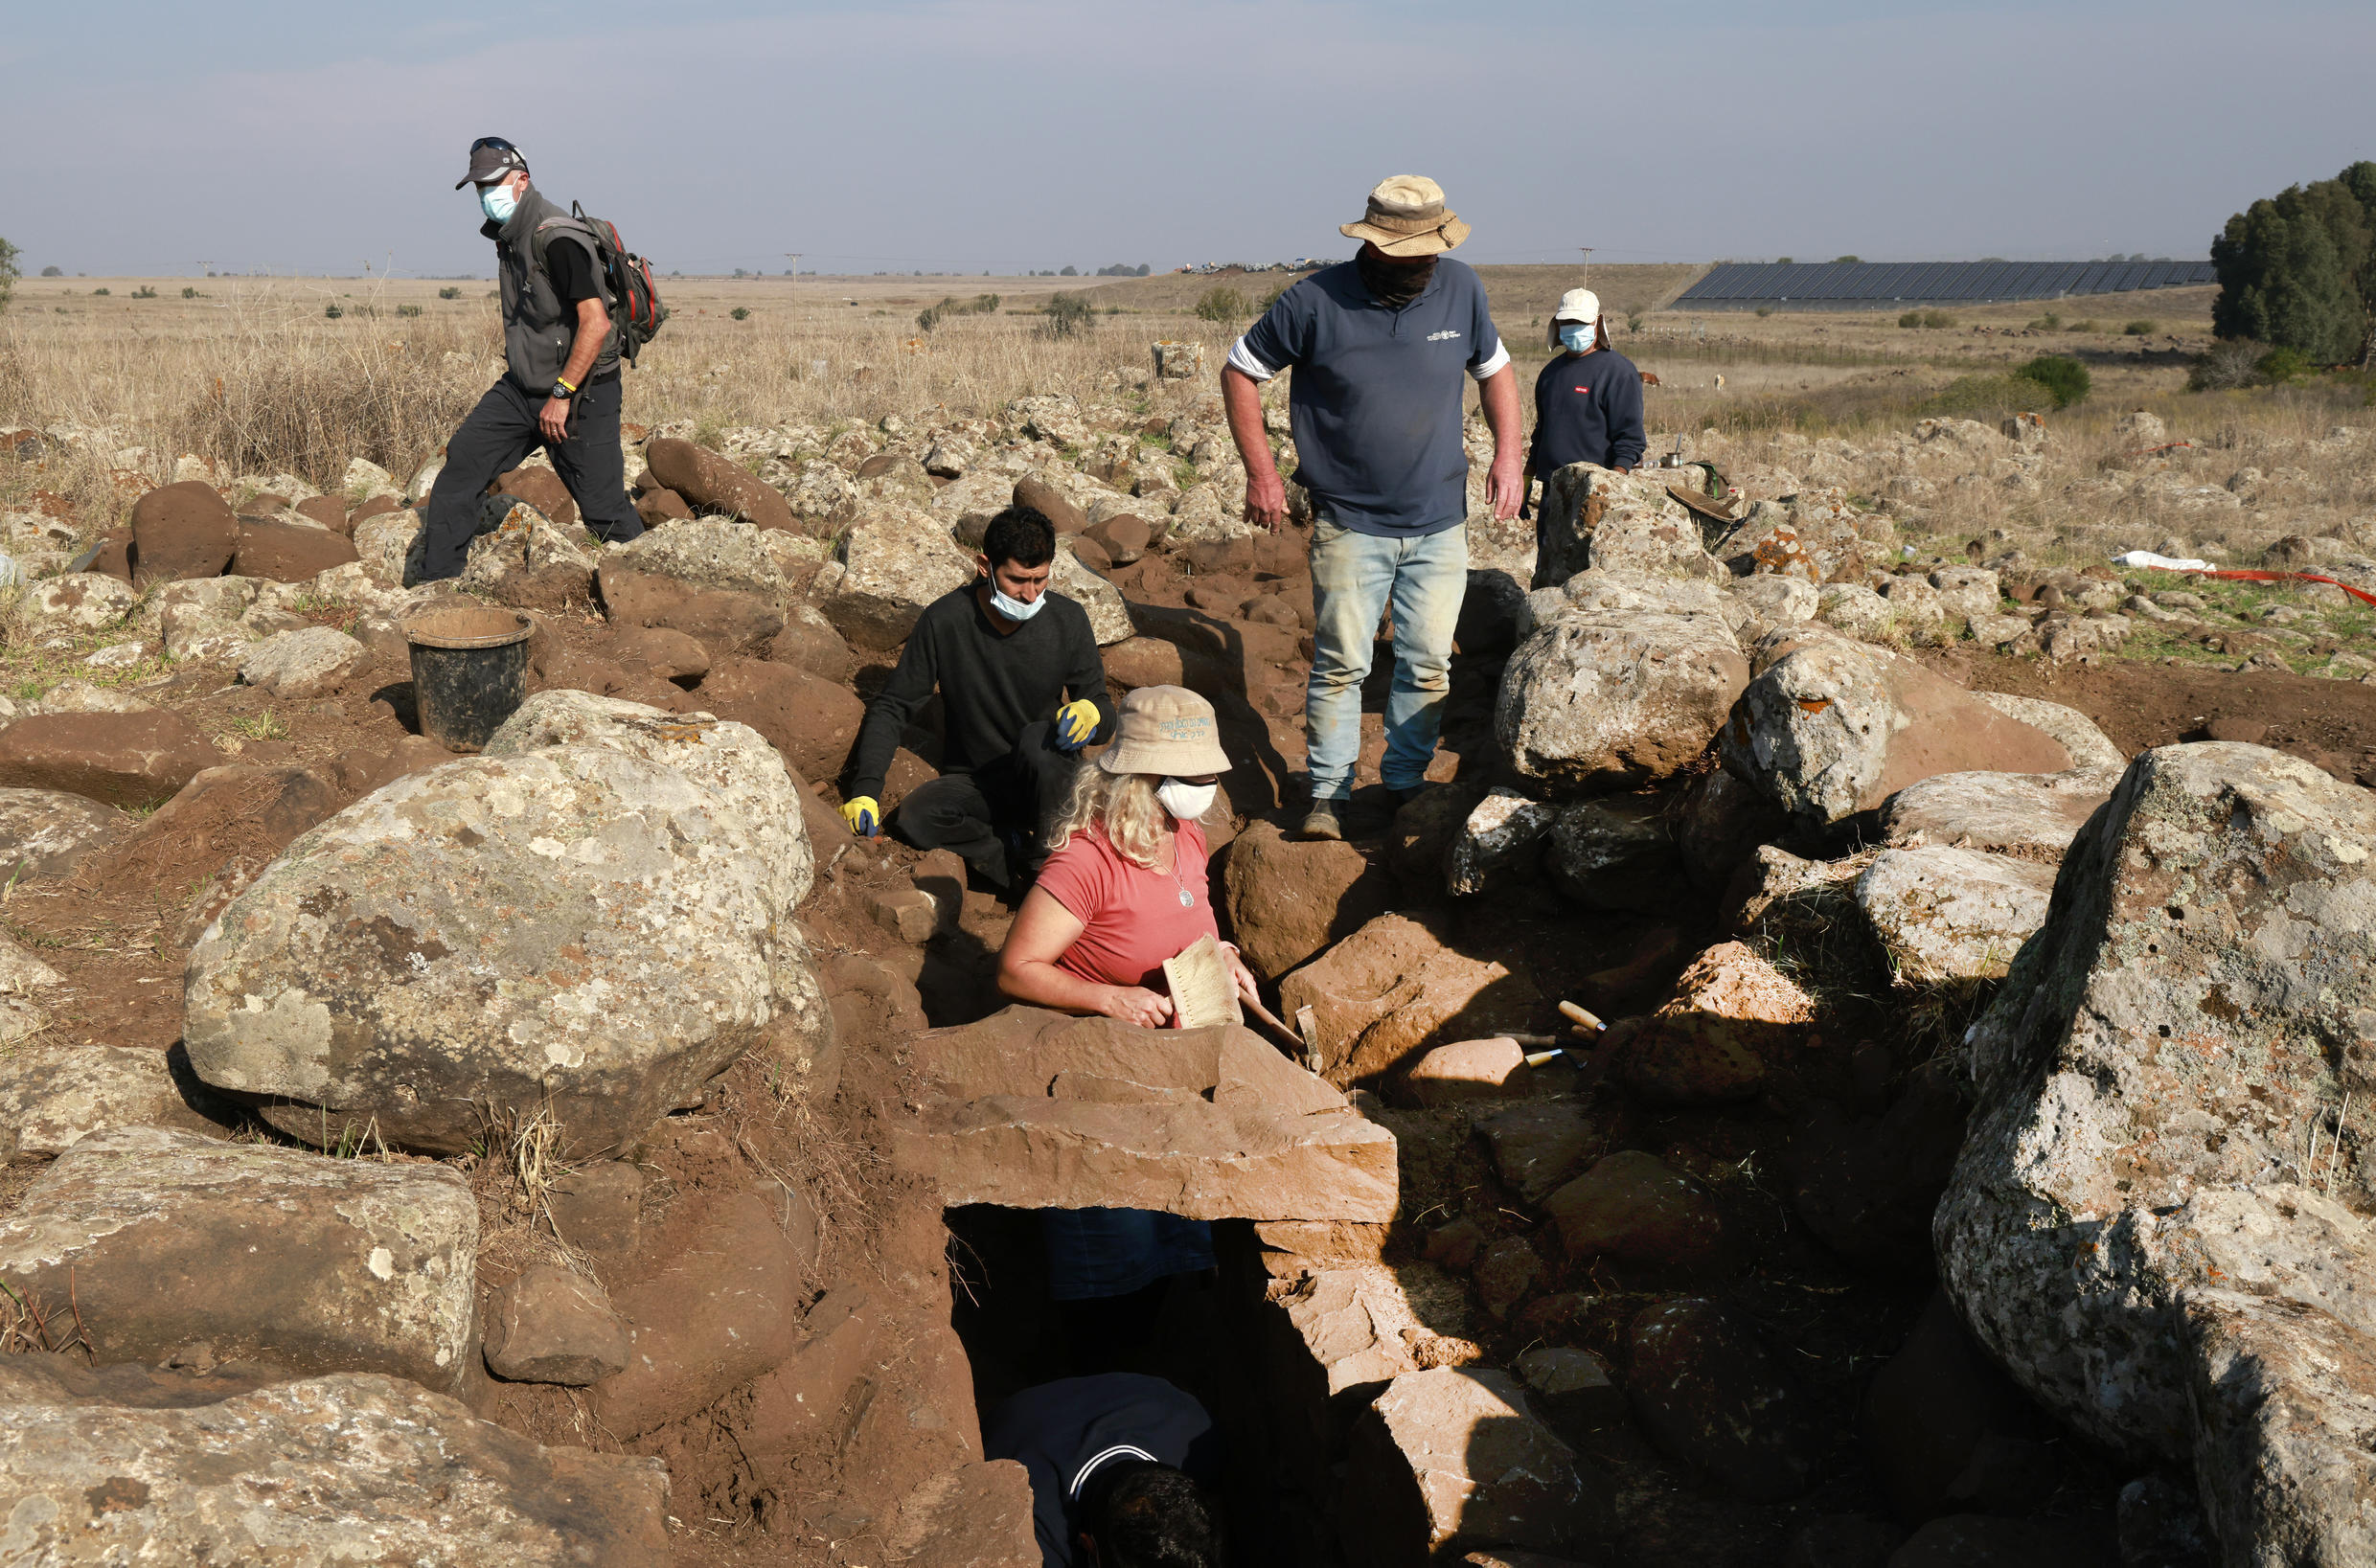 Israeli archaeologists unearth the remains of a 3,000-year-old fort in the occupied Golan Heights that they believe was built by an ally of the Biblical King David